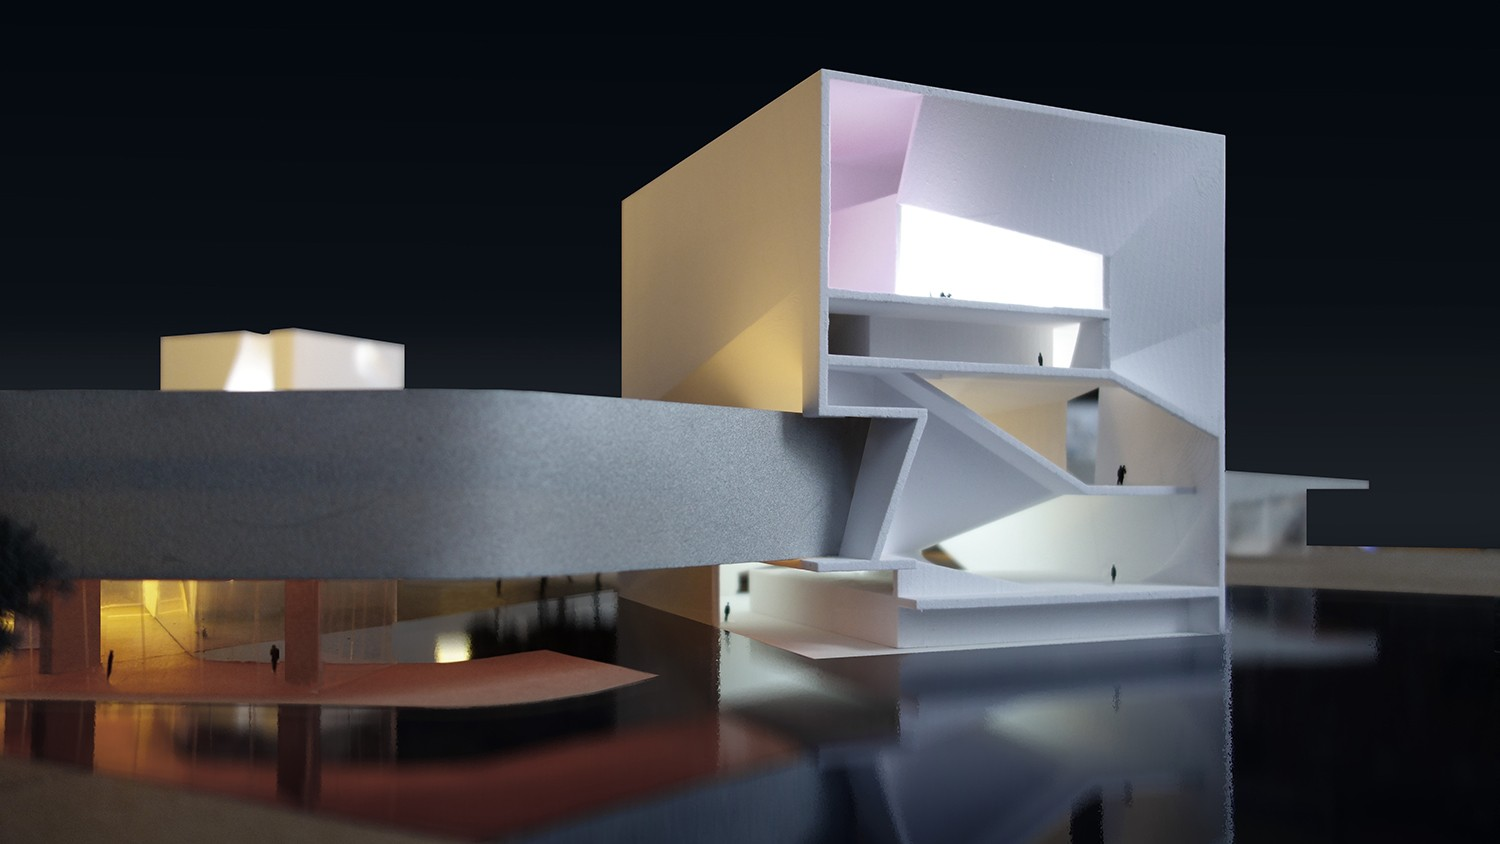 https://stevenholl.sfo2.digitaloceanspaces.com/uploads/projects/project-images/StevenHollArchitects_Qingdao_1_s_touched_WH.jpg